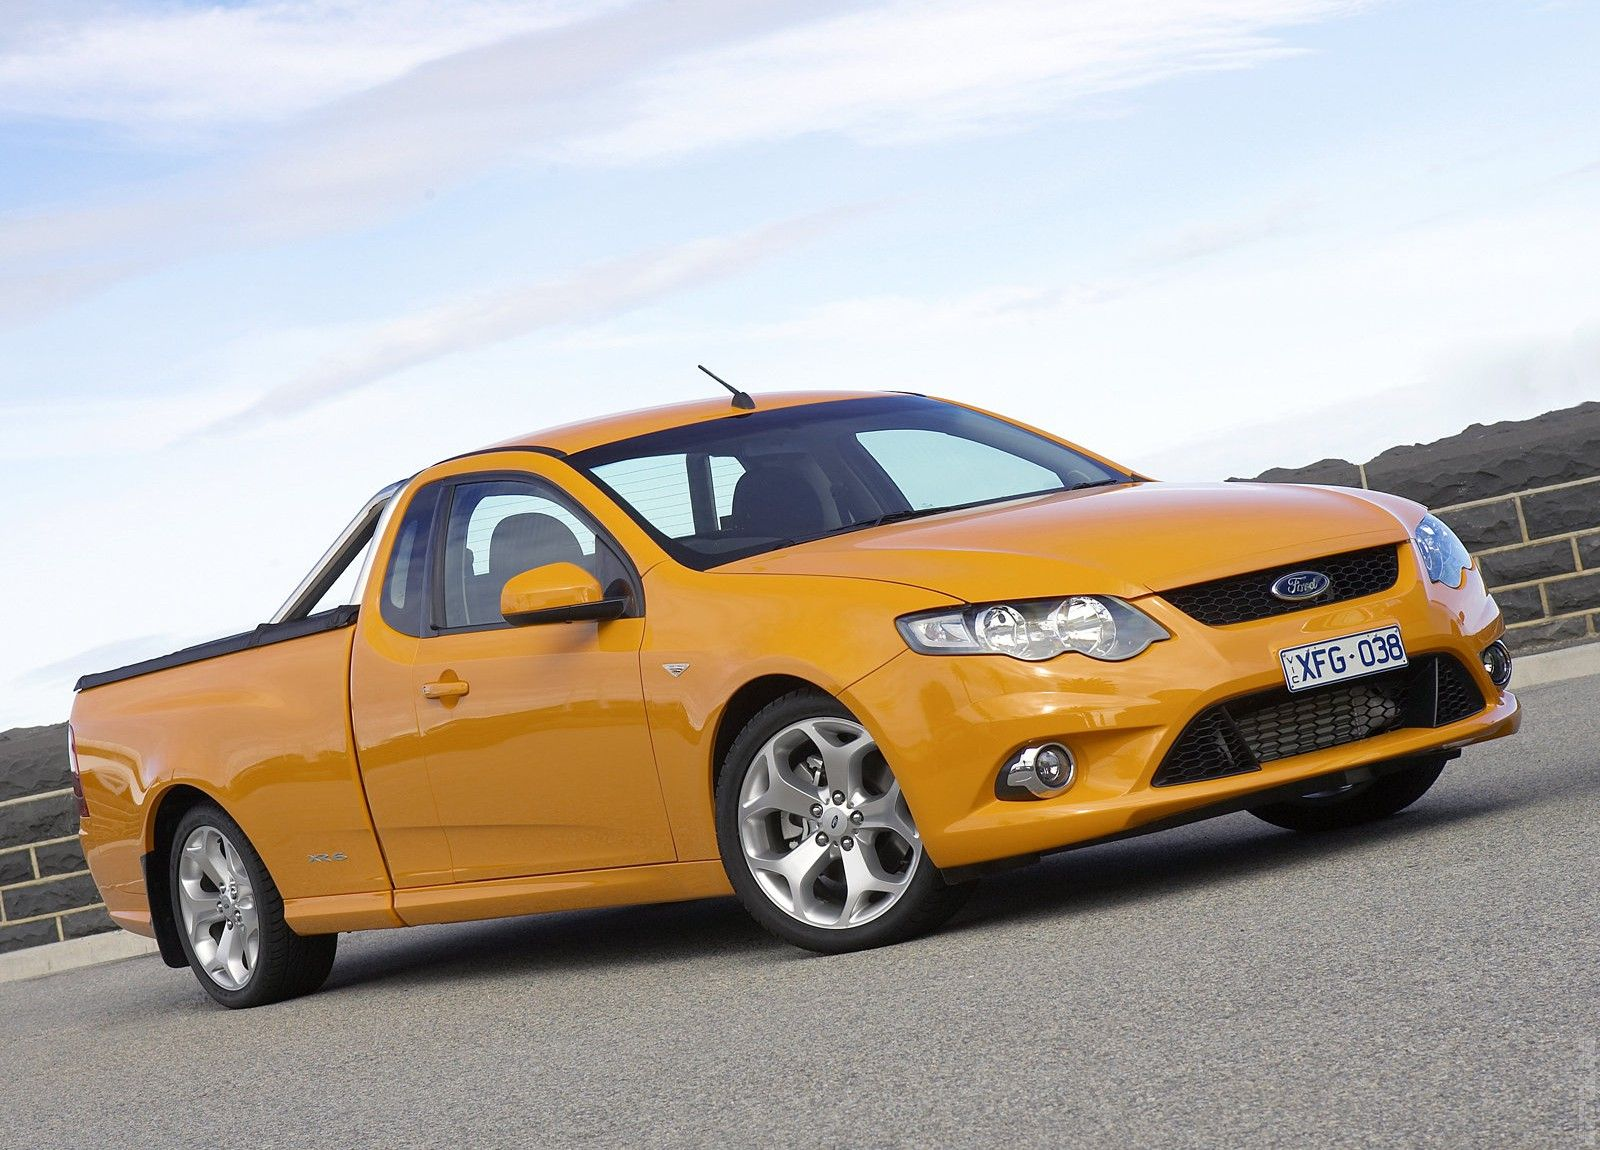 2008 Ford FG Falcon Ute XR6 Turbo